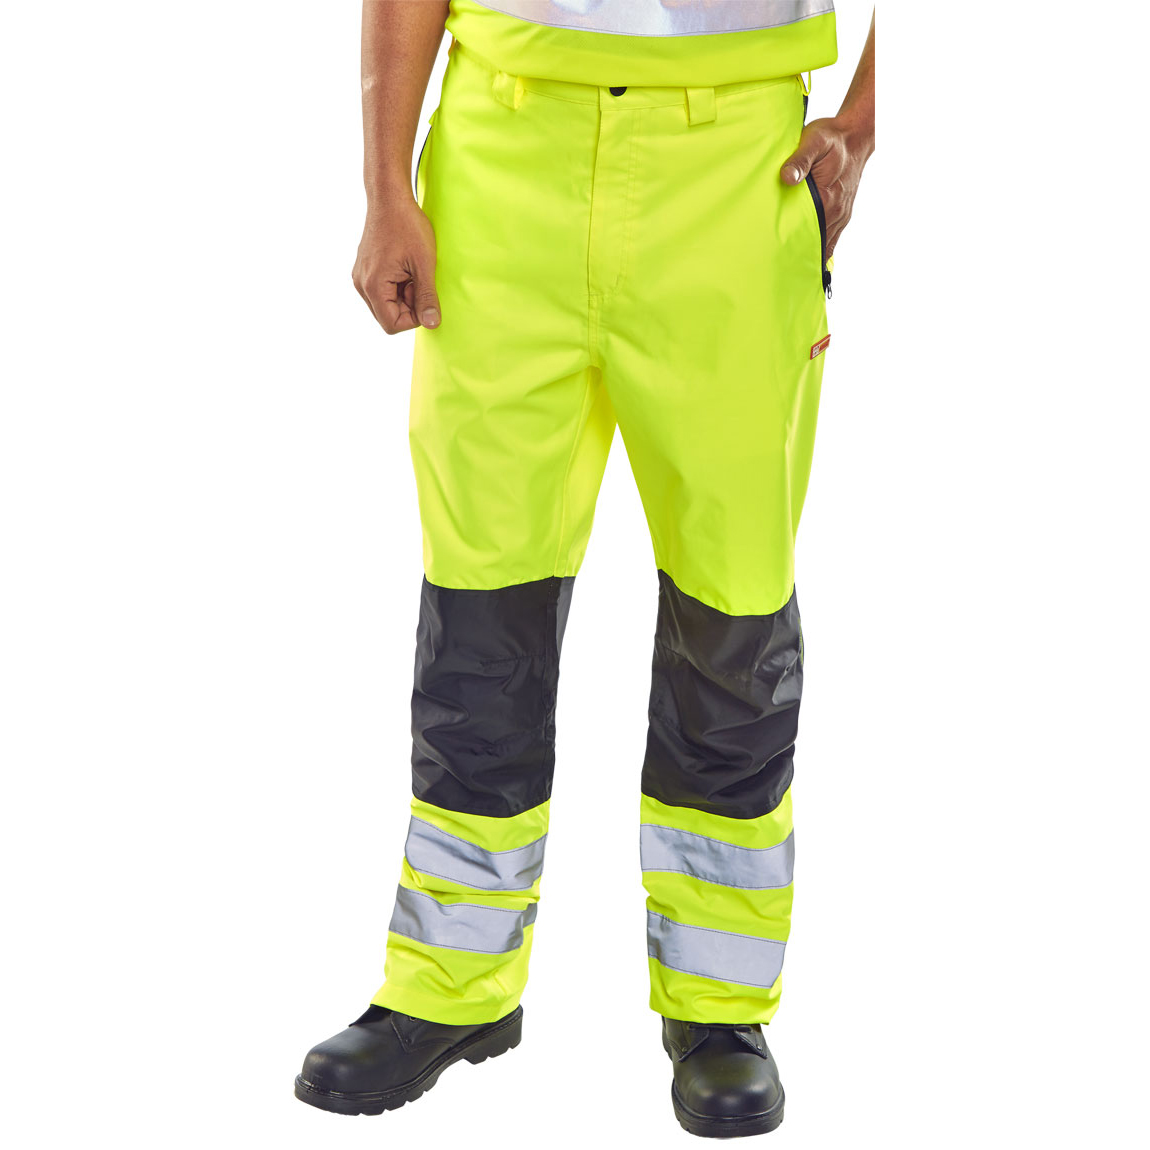 B-Seen Contrast Trousers Hi-Vis Waterproof L Saturn Yellow Ref BD85SYL *Up to 3 Day Leadtime*